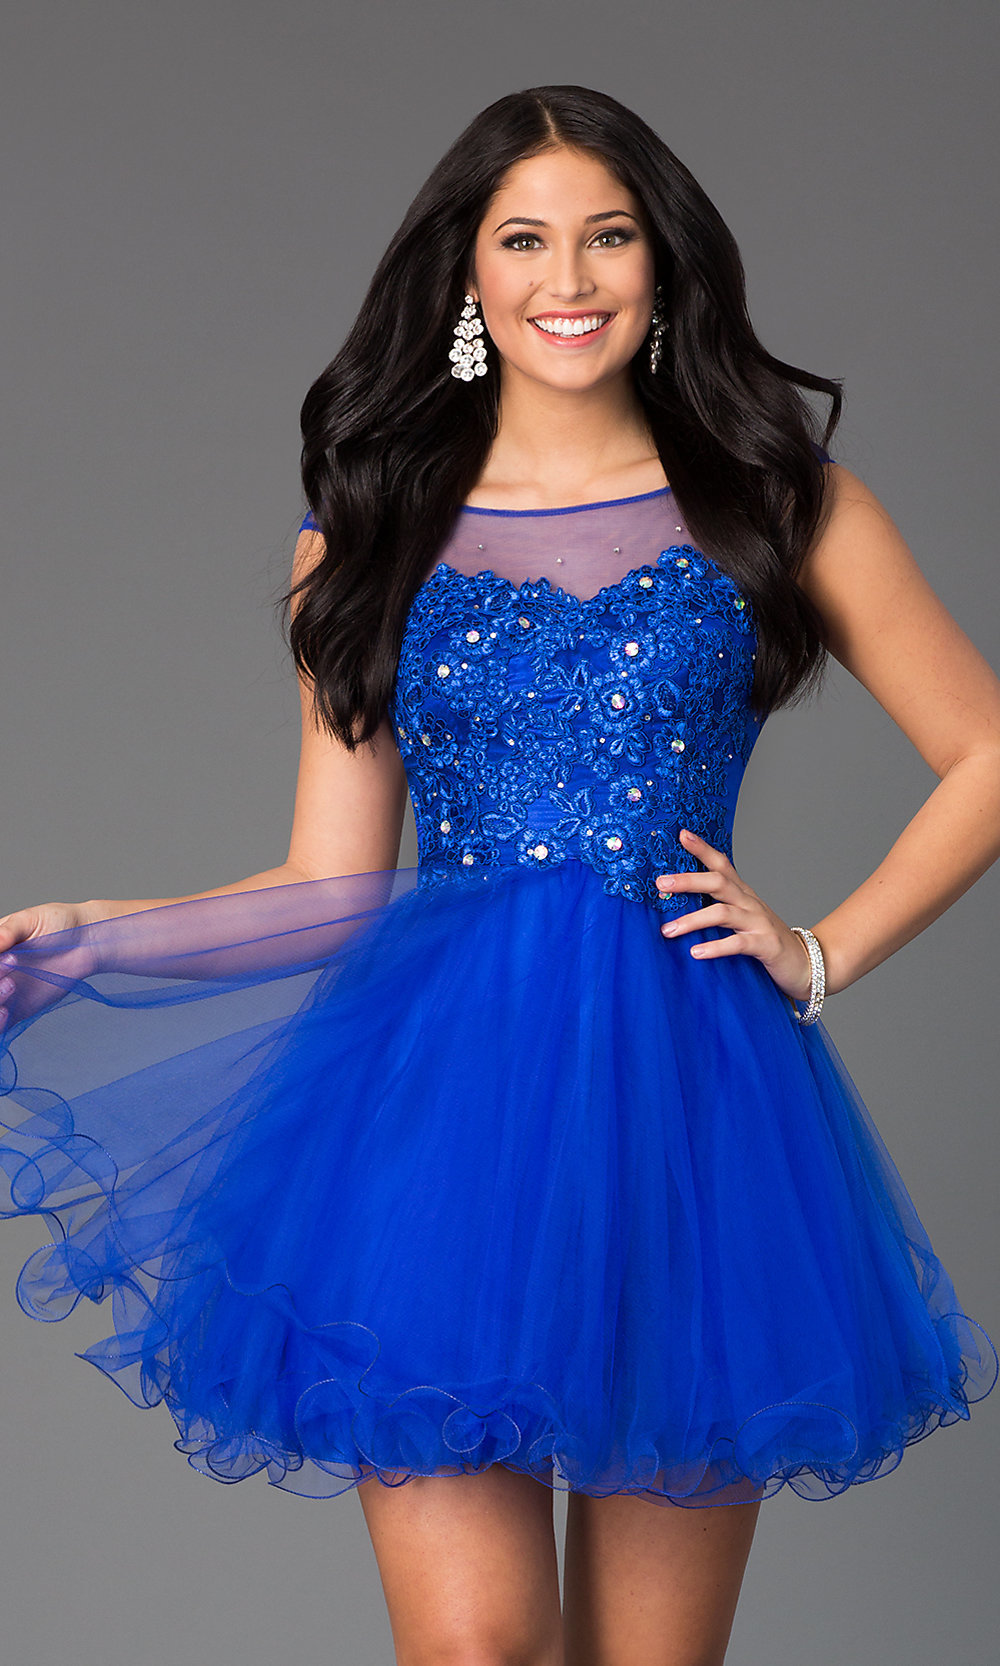 Jeweled-Lace Illusion Short Prom Dress - PromGirl